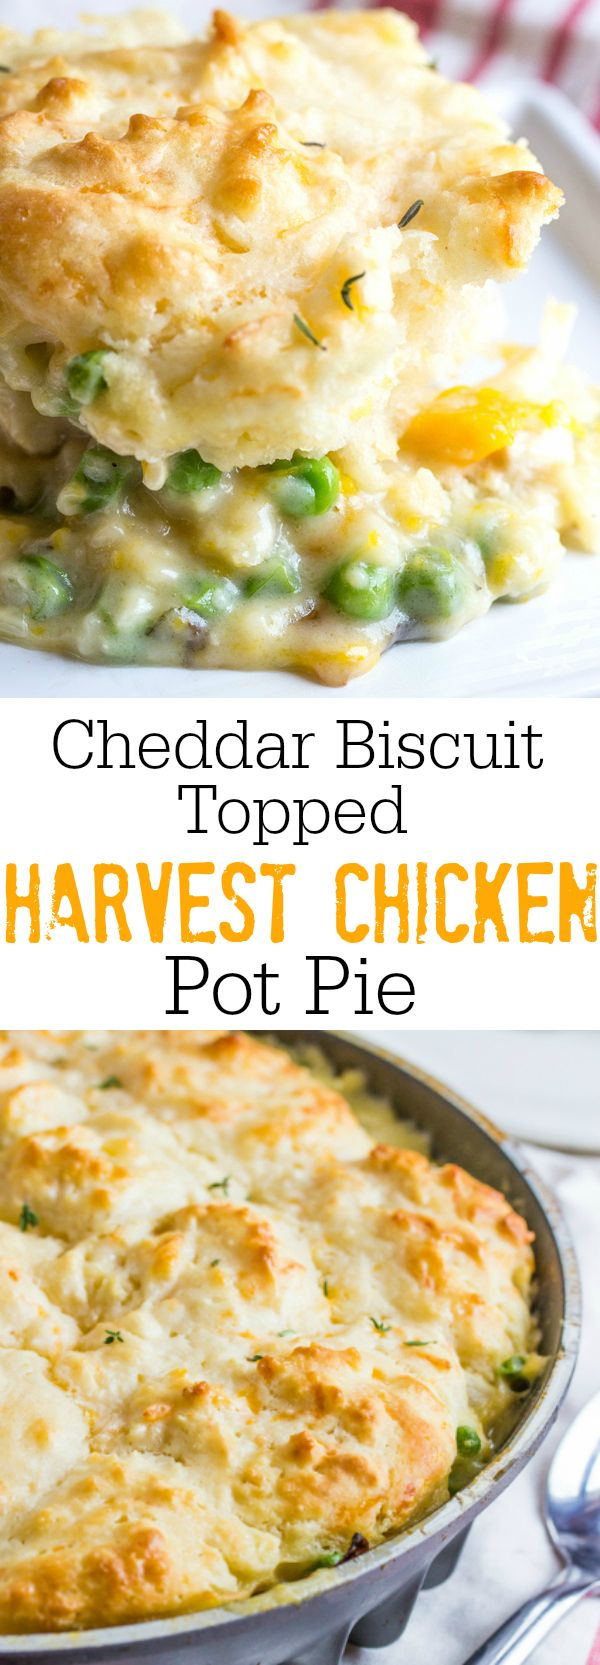 Cheddar Biscuit Topped Harvest Chicken Pot Pie - Tornadough Alli